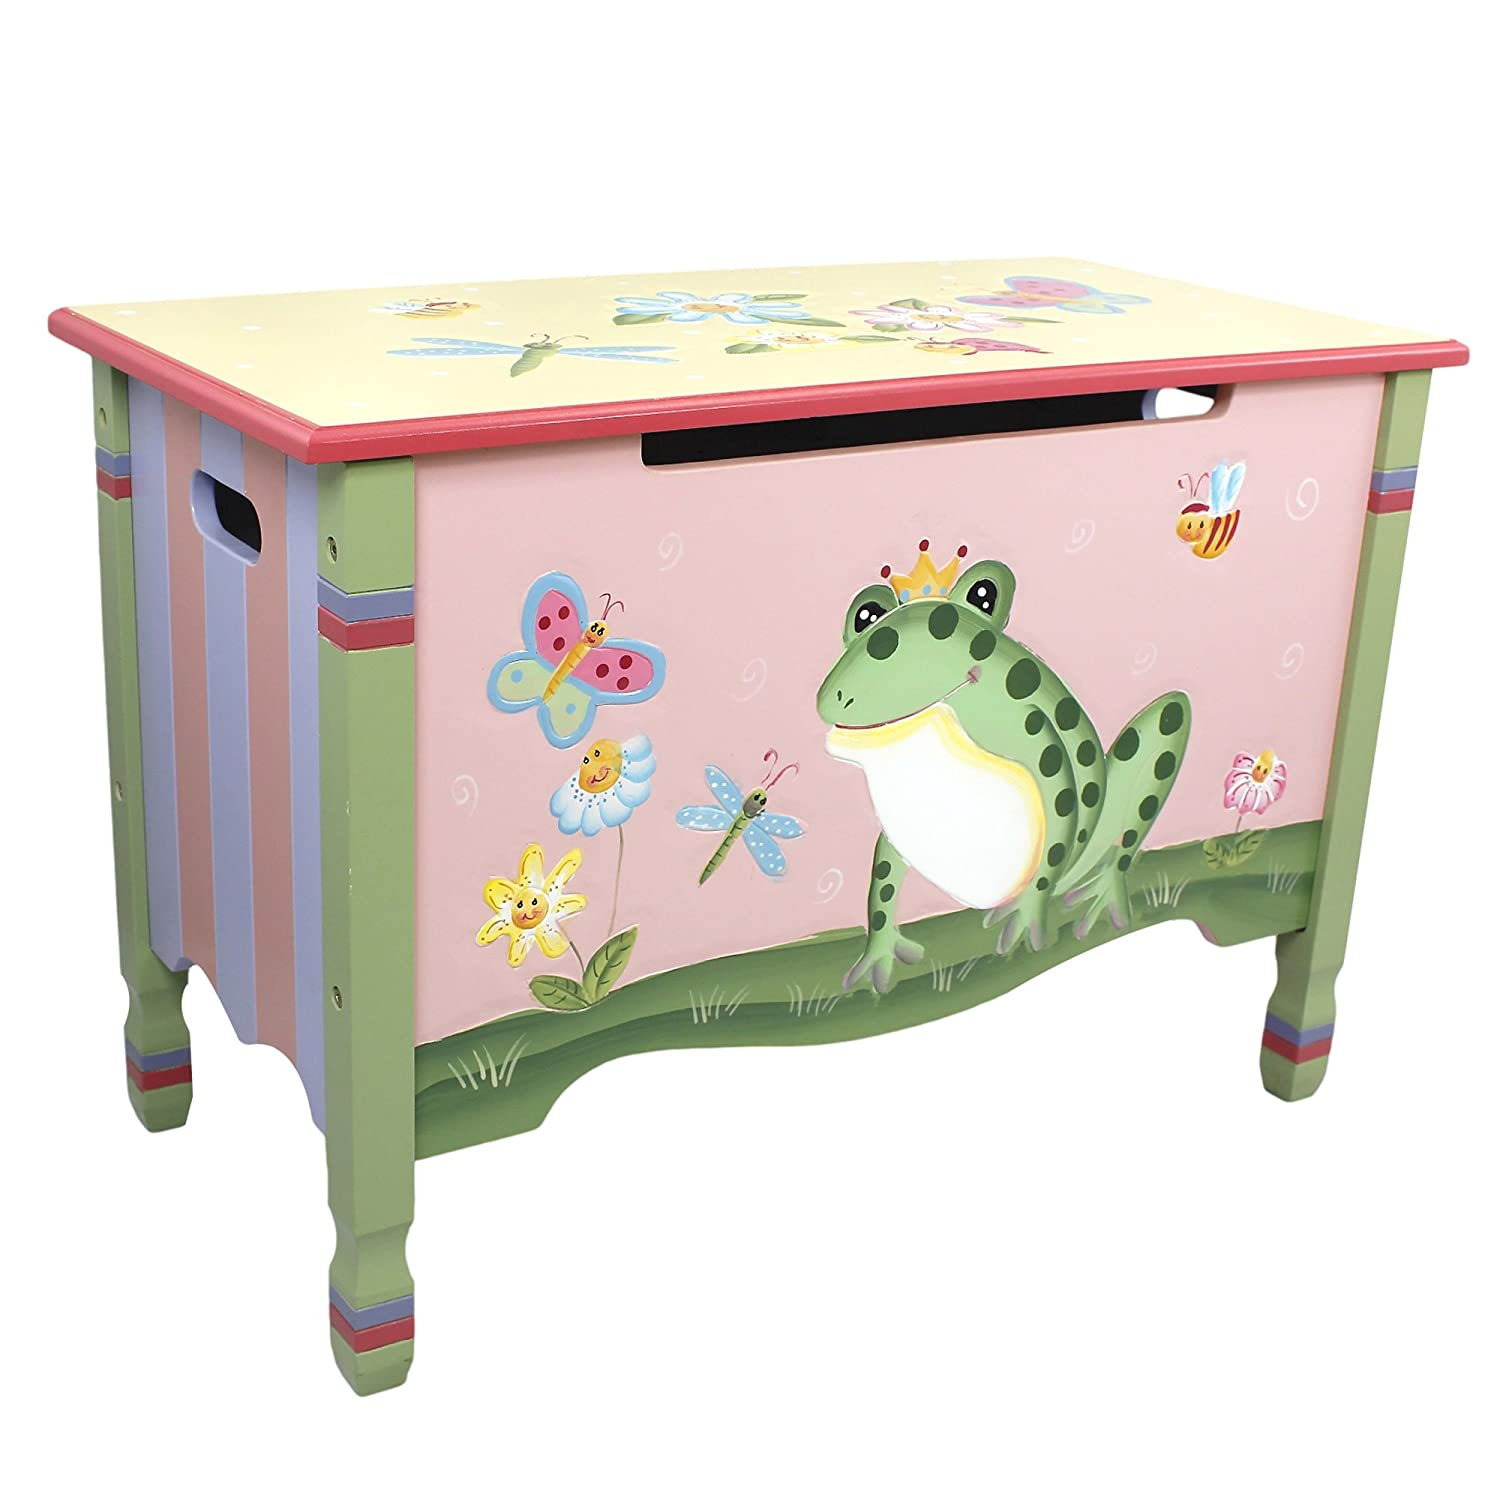 Fantasy Fields - Magic Garden Thematic Kids Wooden Toy Chest with Safety Hinges | Imagination Inspiring Hand Crafted & Hand Painted Details Non-Toxic, Lead Free Water-based Paint Teamson W-7479A